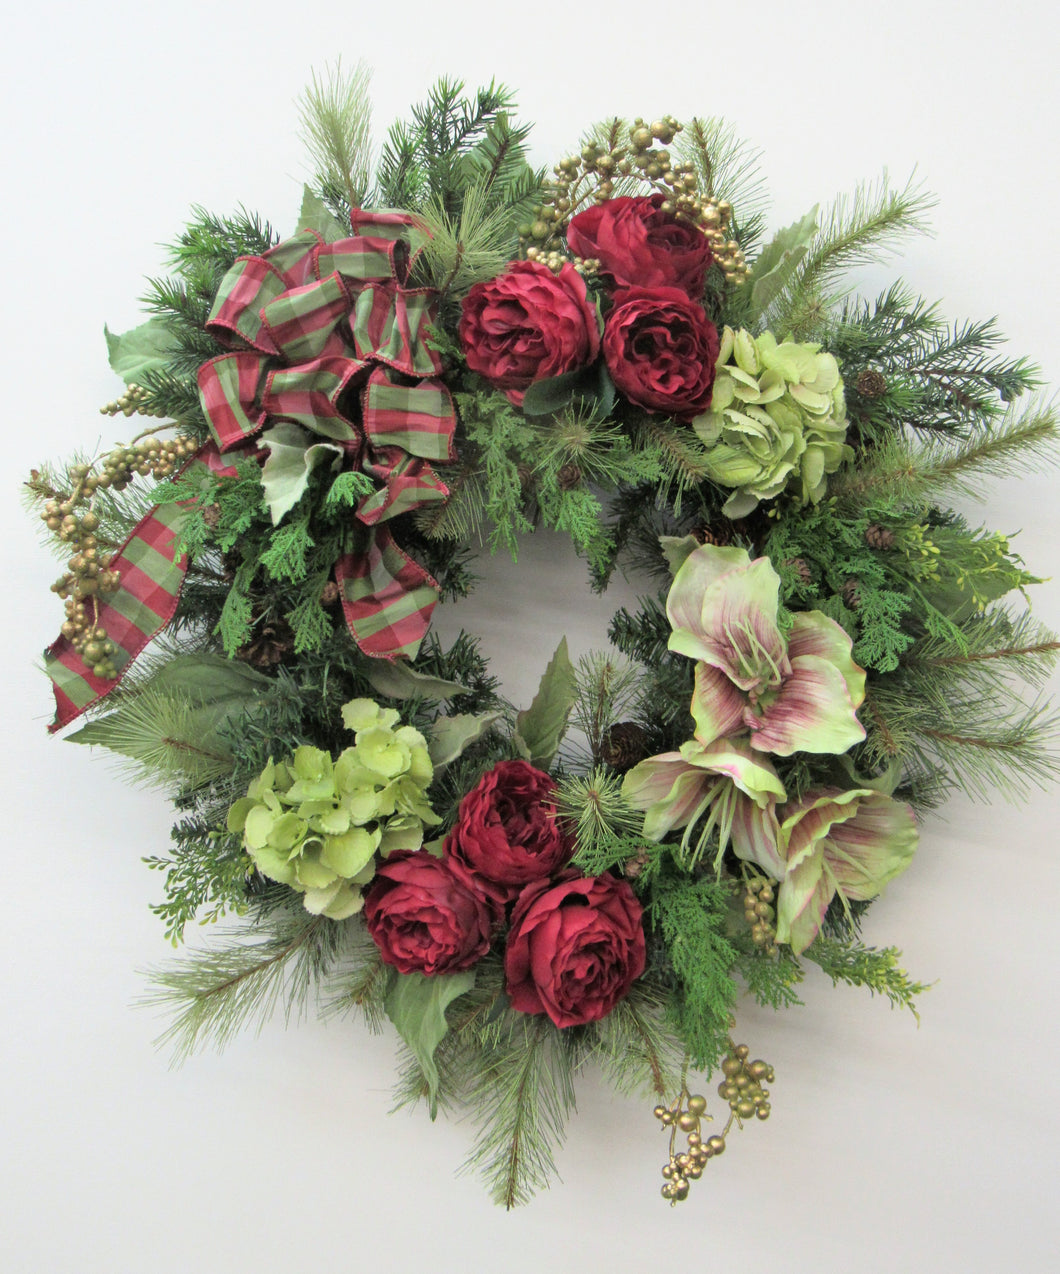 Gallery/Trans41 - April's Garden Wreath